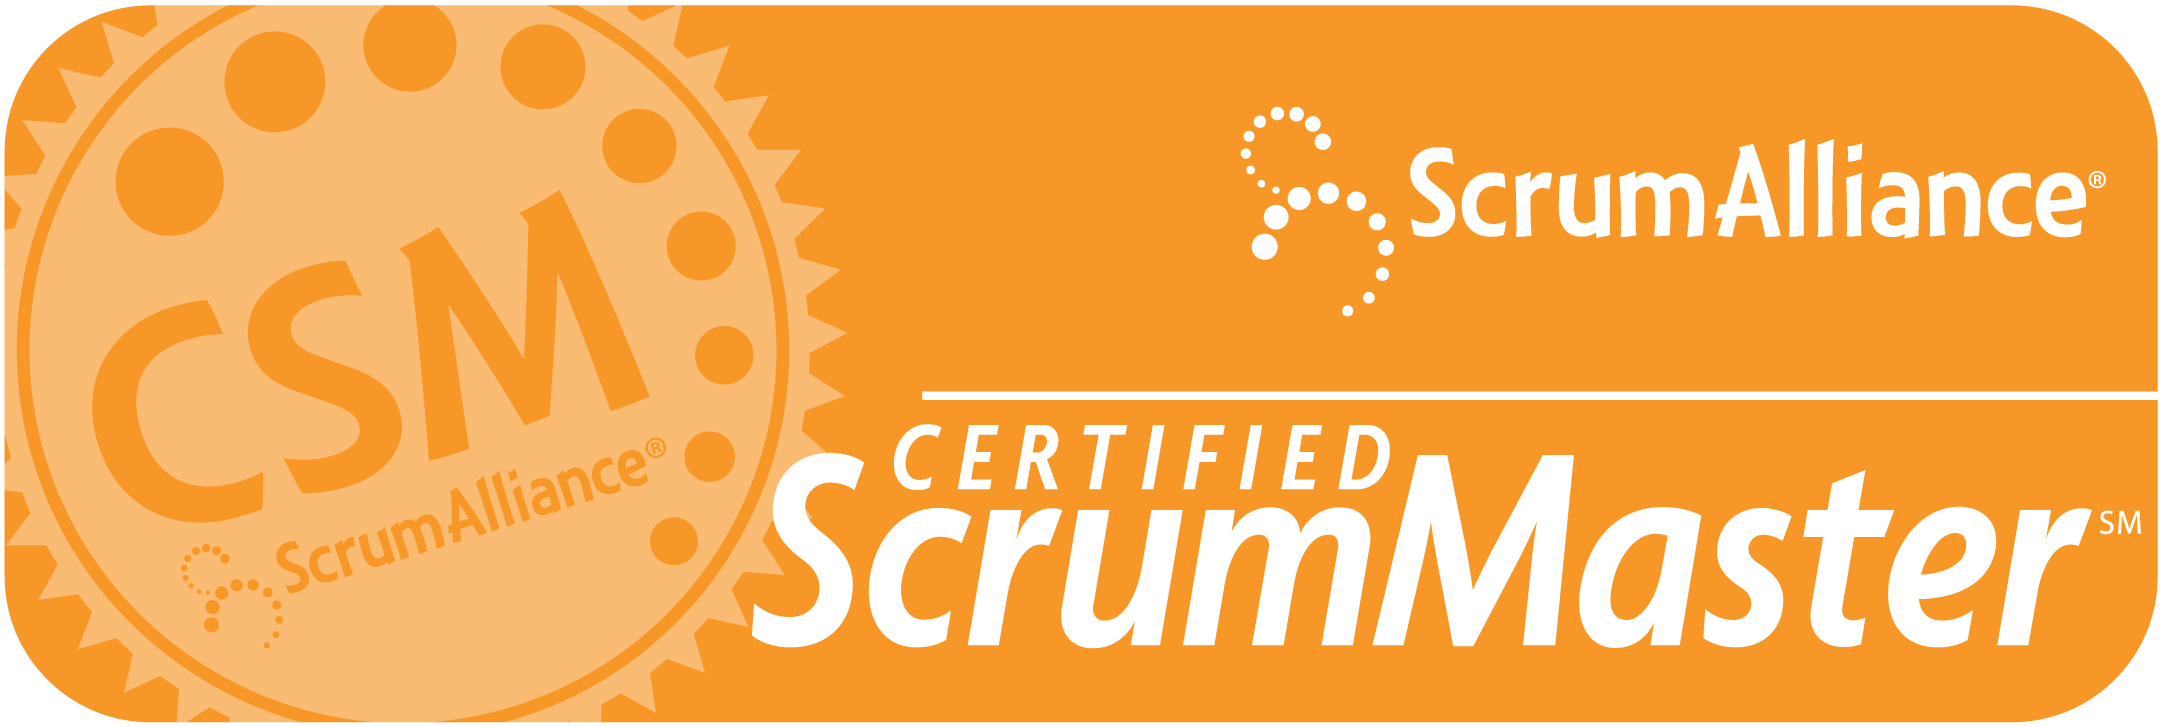 Certified Scrum Master